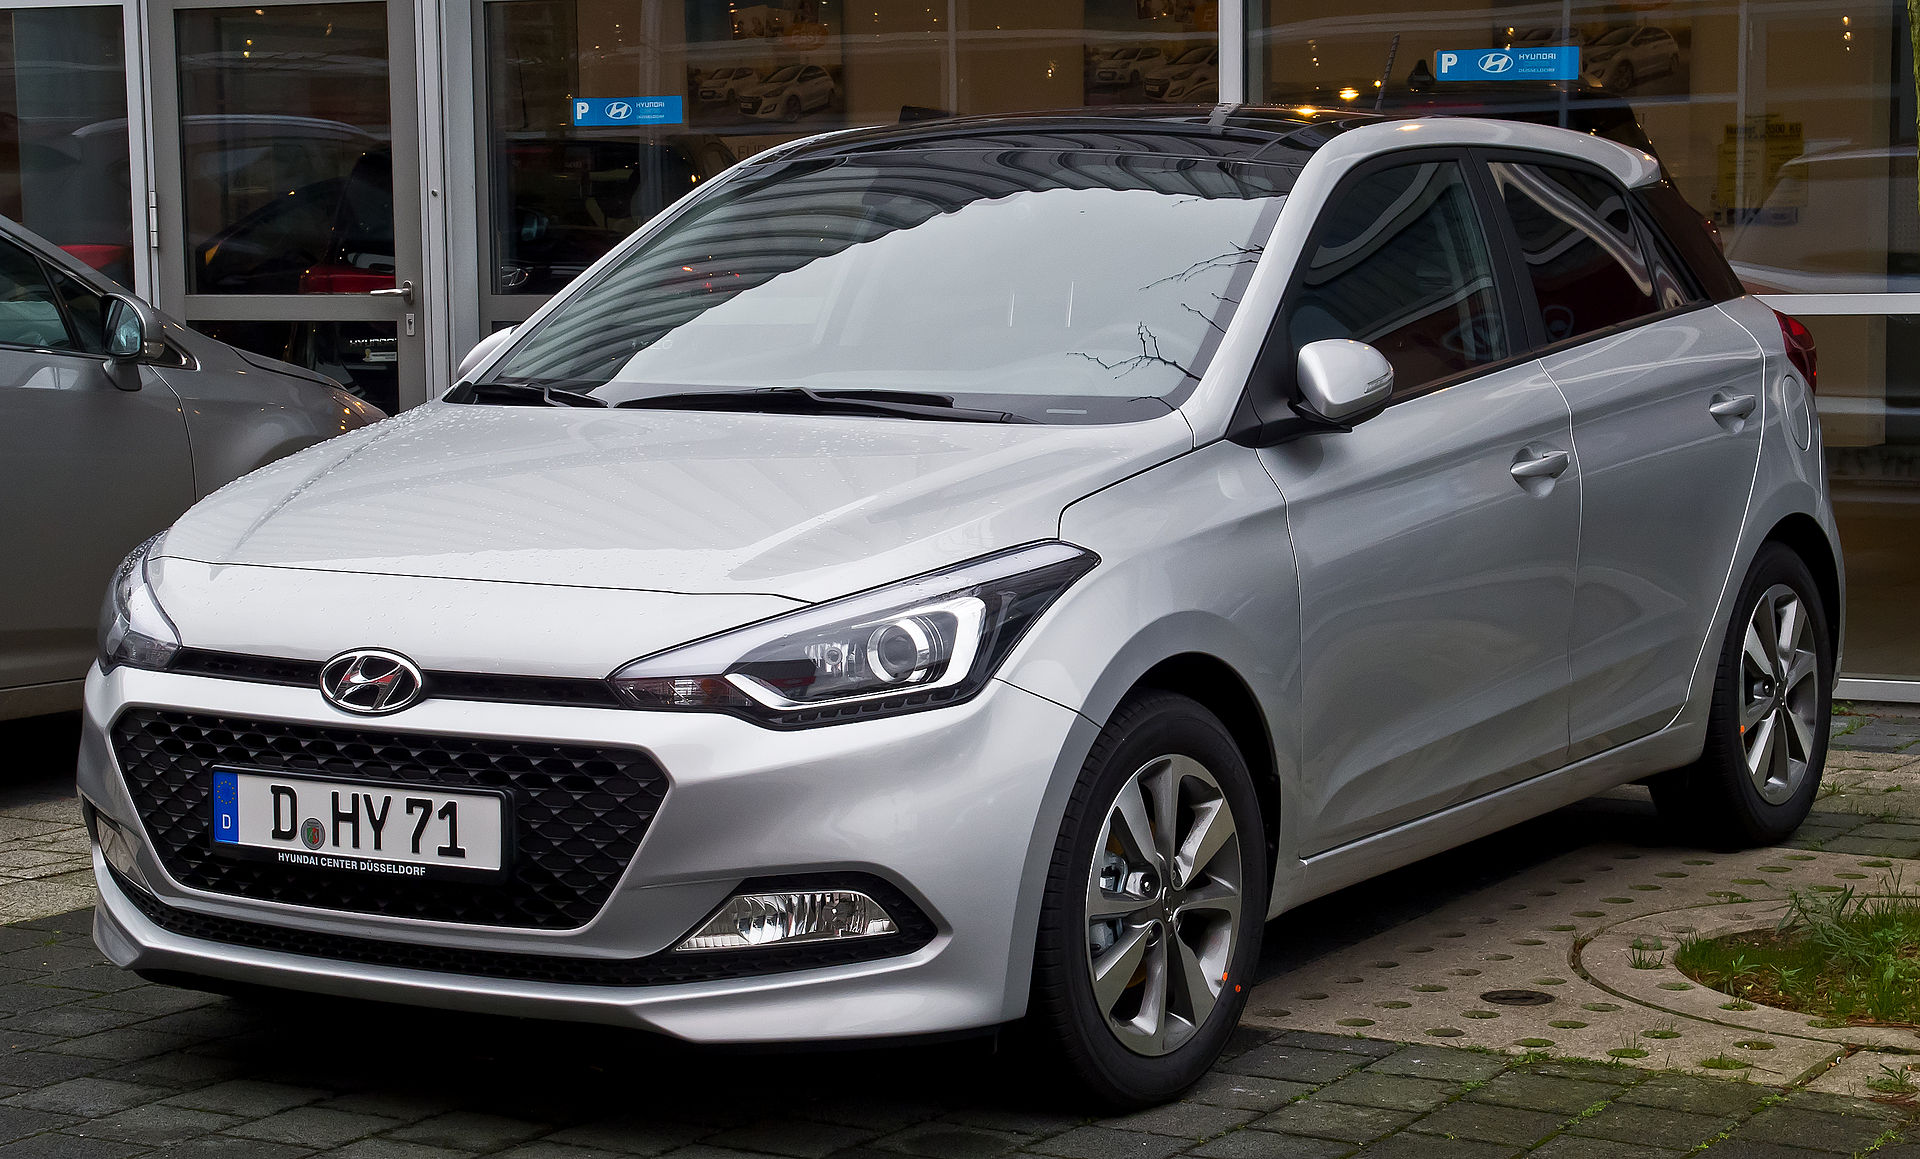 hyundai i20 wikipedia. Black Bedroom Furniture Sets. Home Design Ideas